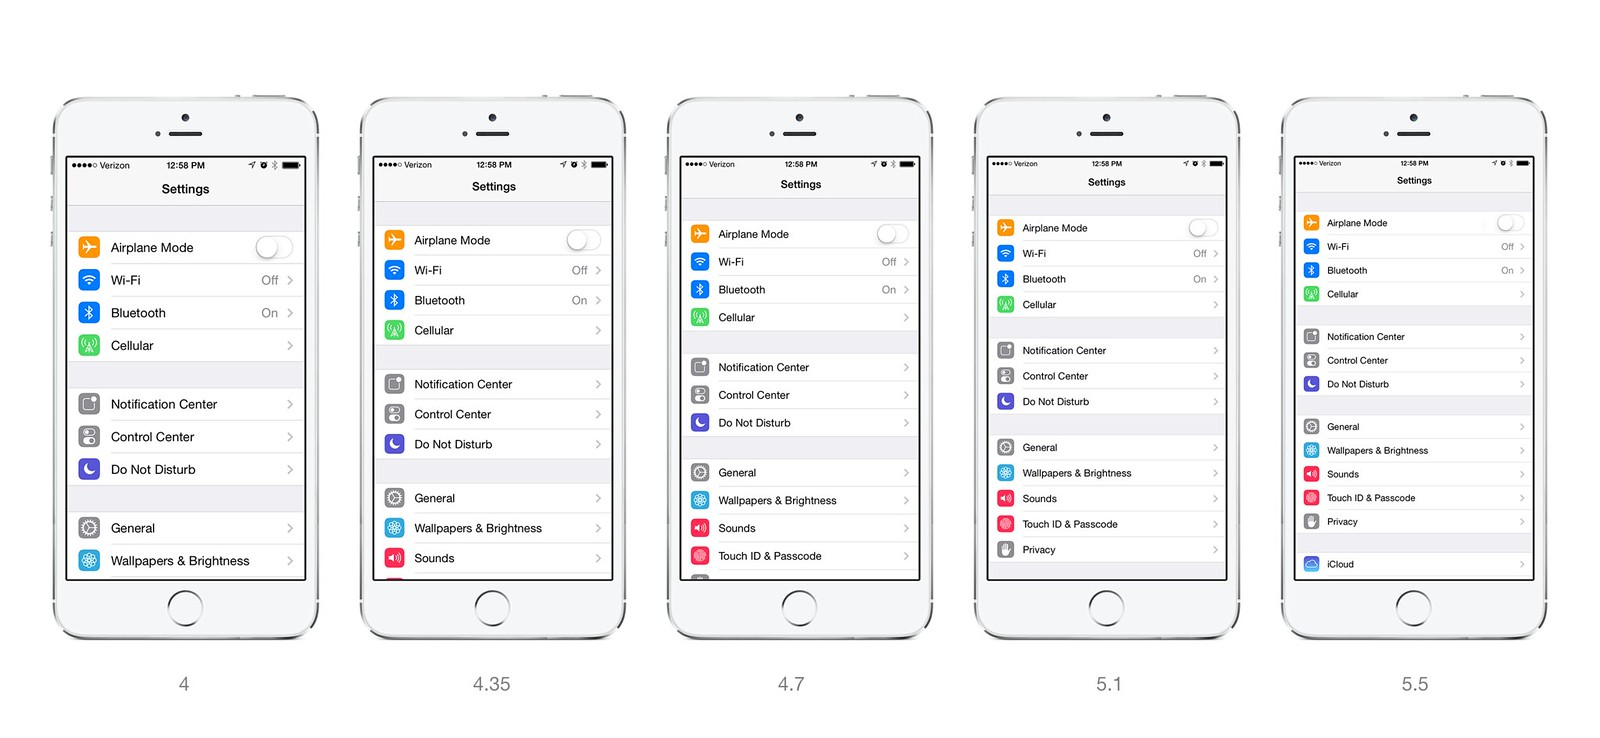 5.5 inch iPhone 6 Scaled Resolutions